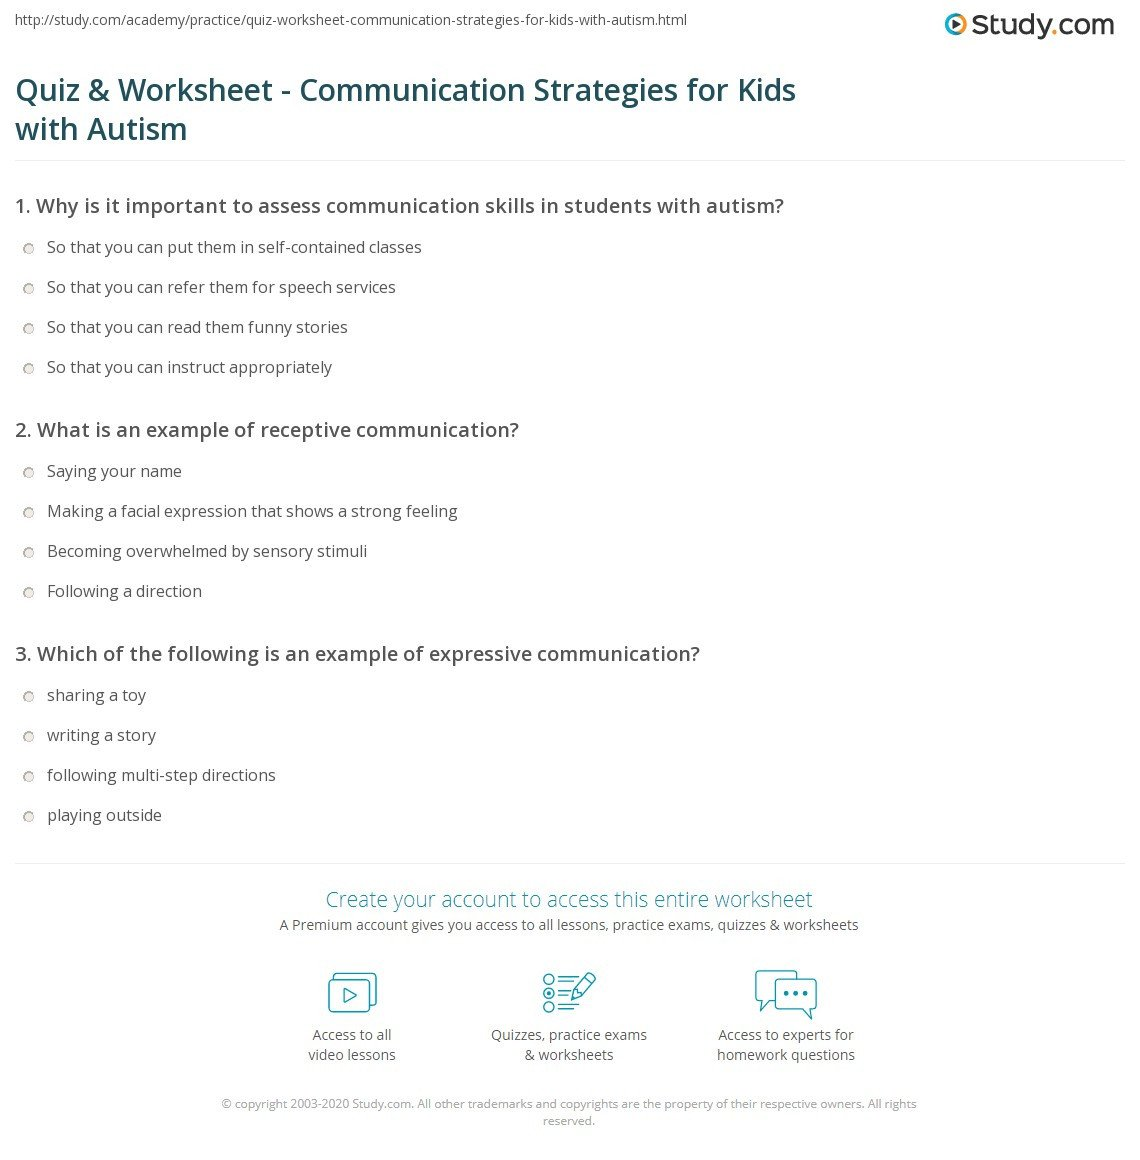 Following Multistep Directions Worksheets Quiz & Worksheet Munication Strategies for Kids with